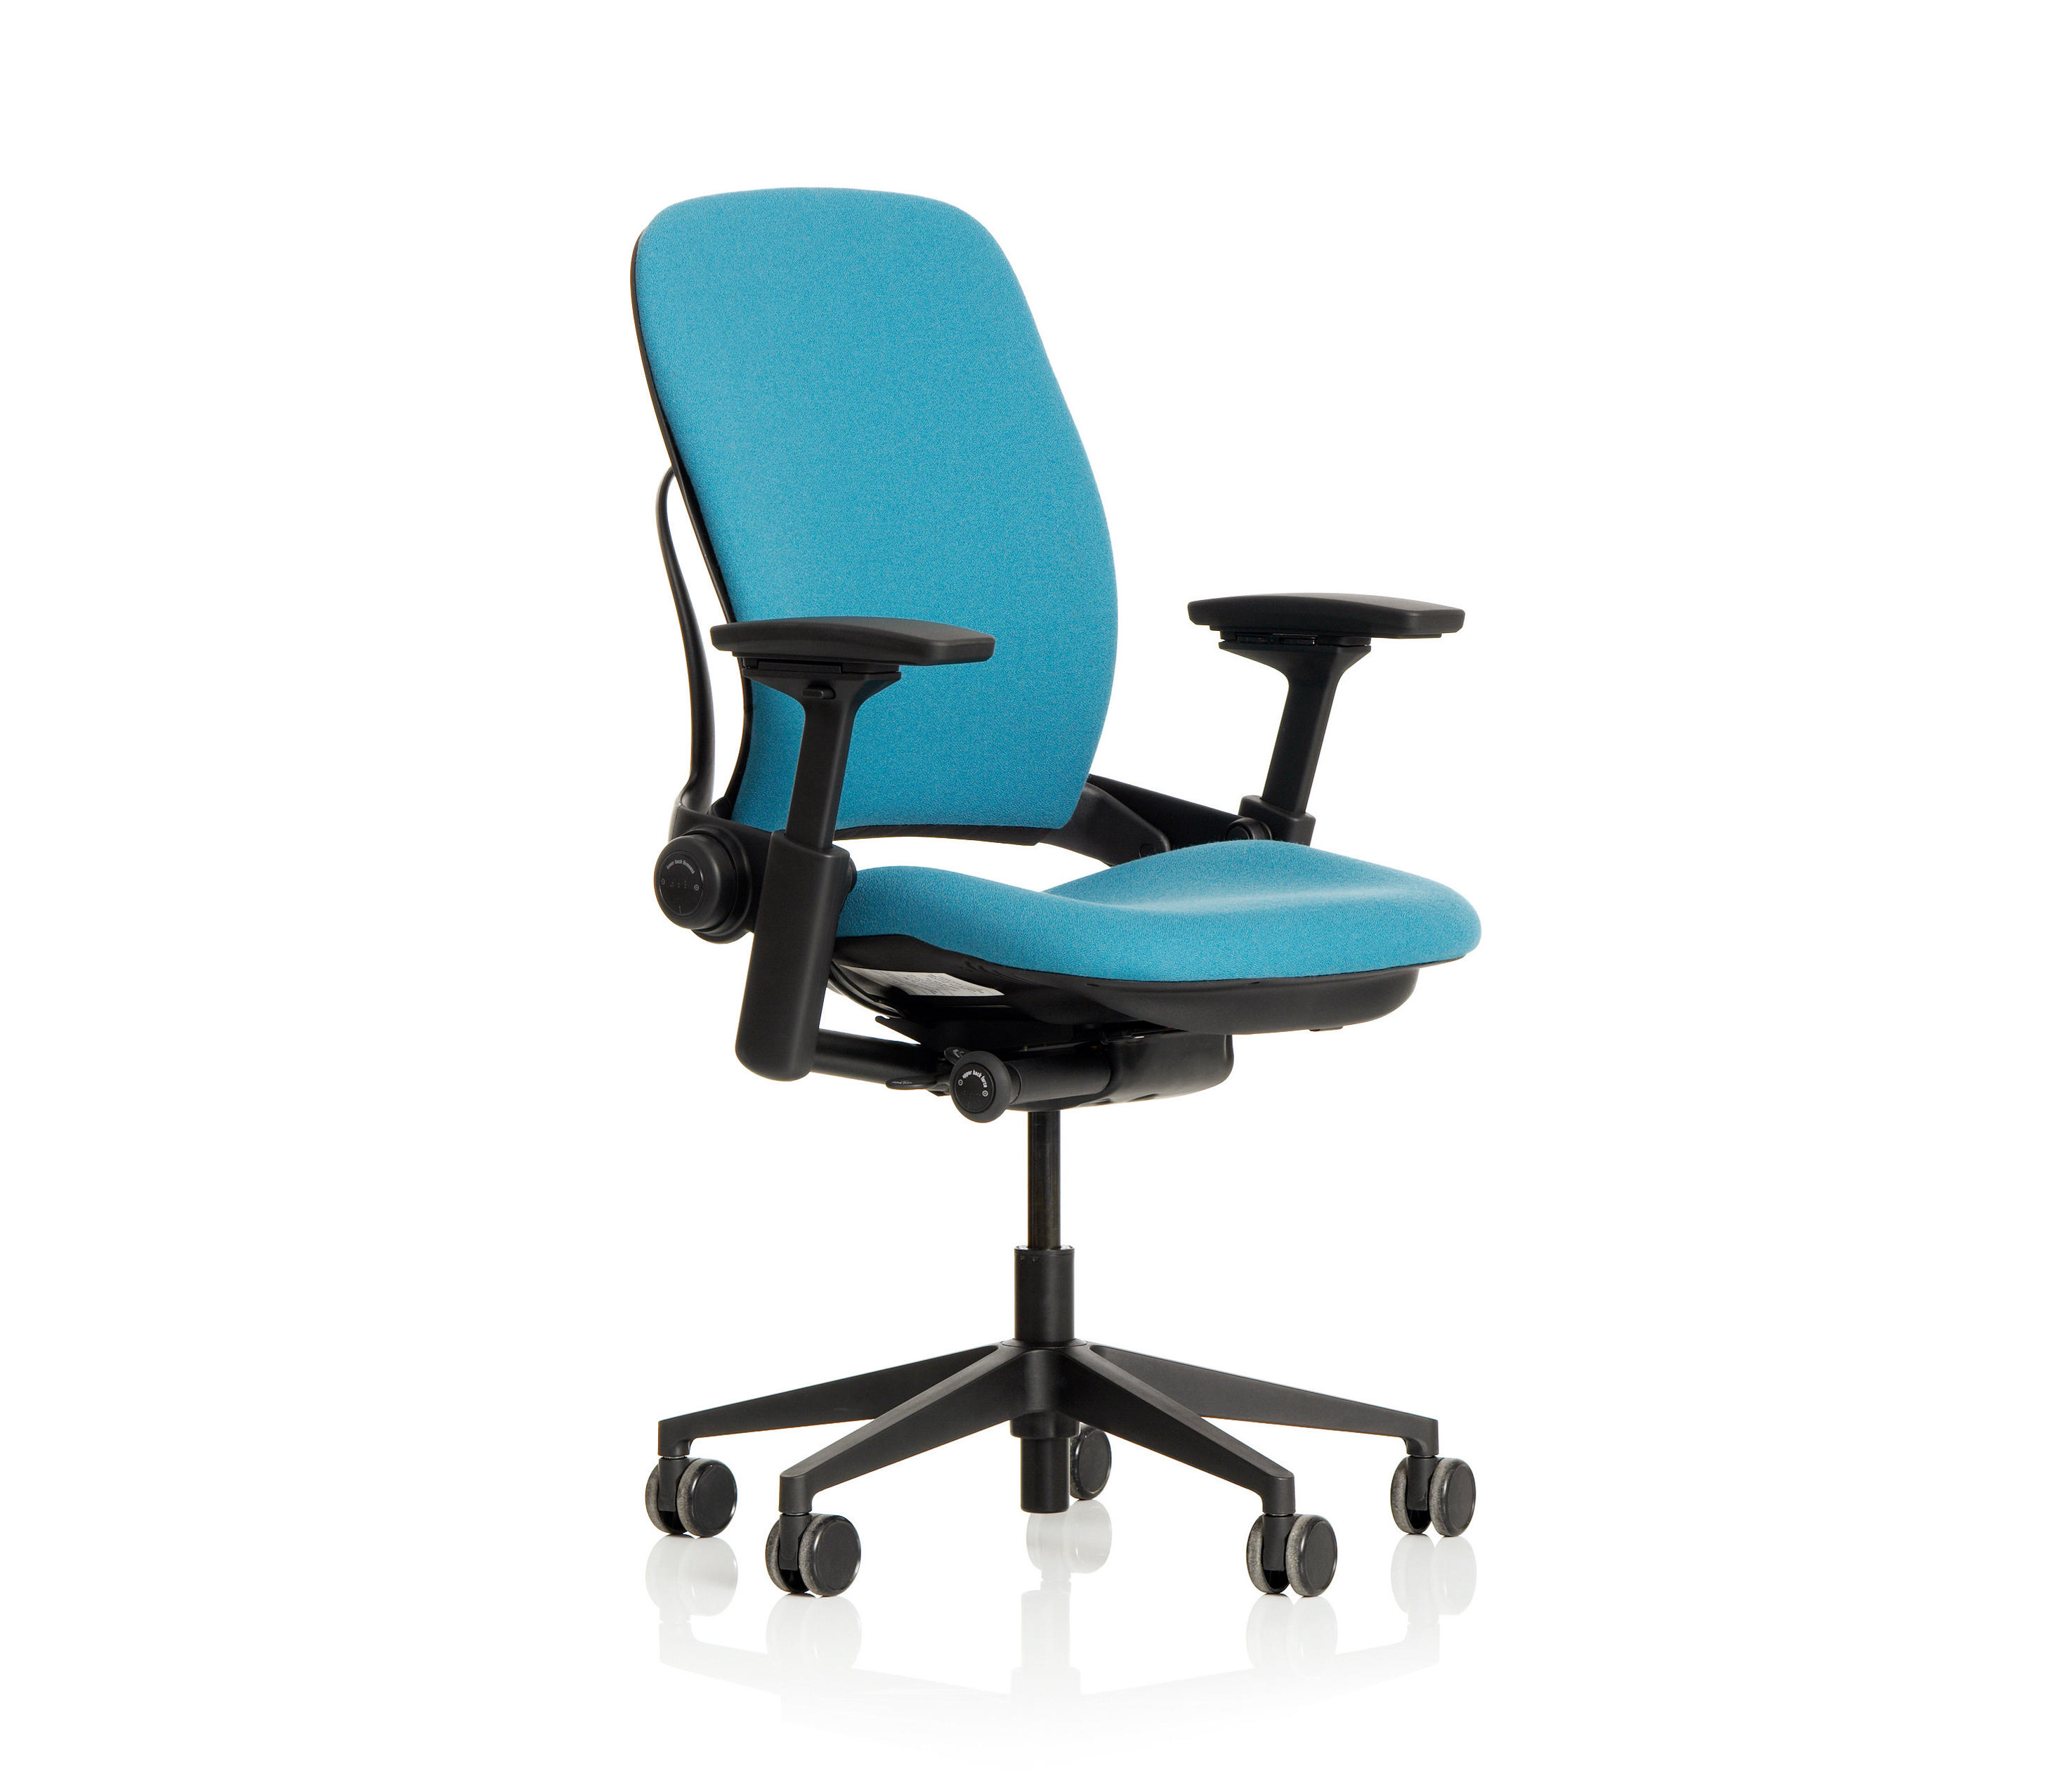 Leap chaises de travail de steelcase architonic for Chaise de travail